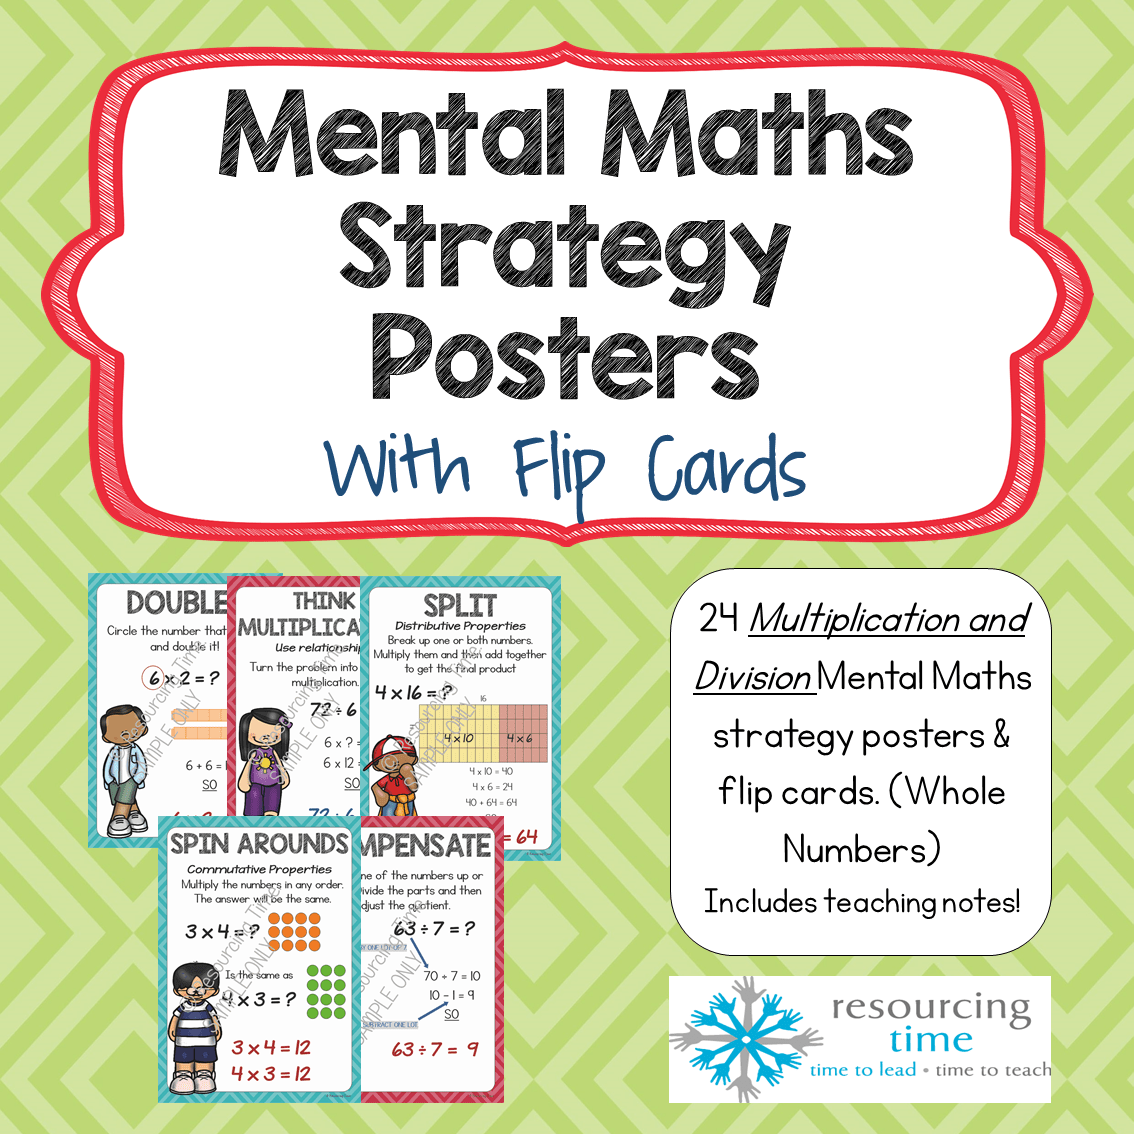 Mental Maths Strategy Posters Flip Cards